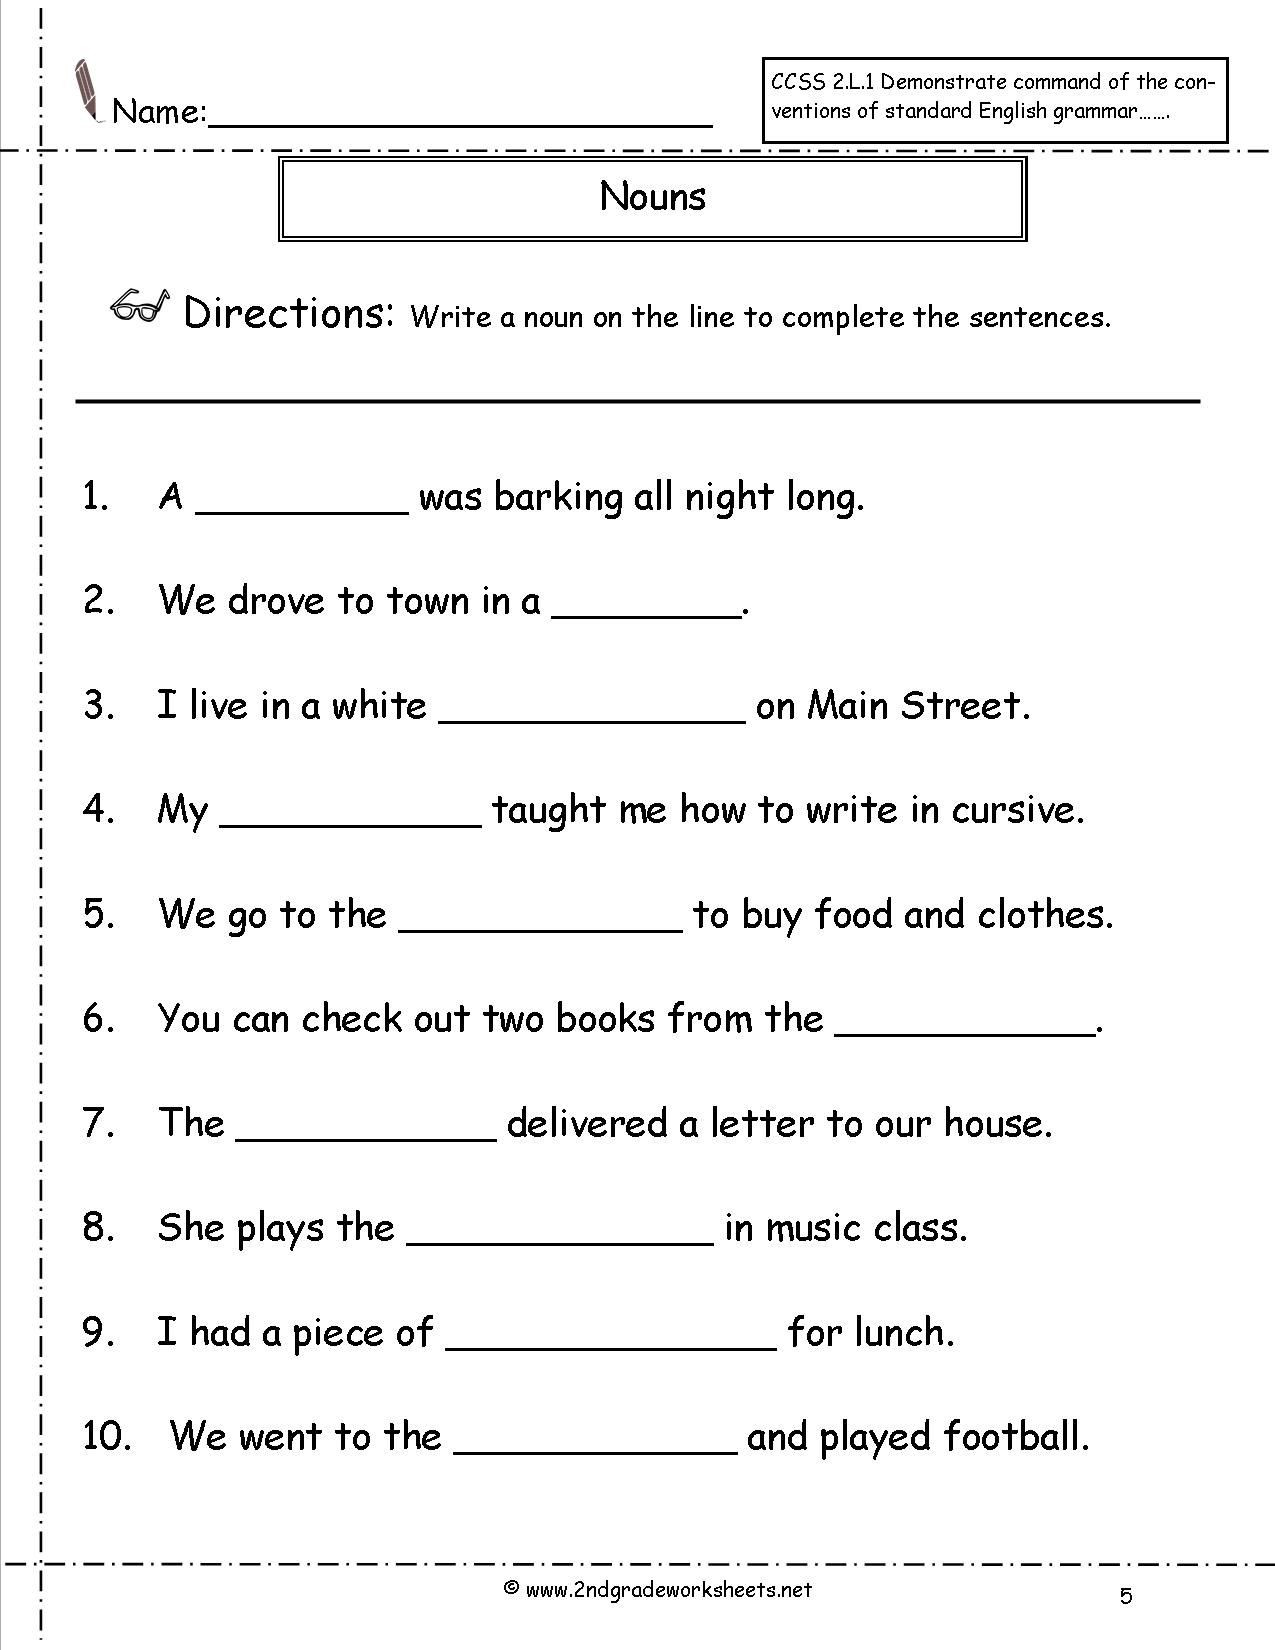 Homophones Worksheets 2nd Grade 11 Best Homophones Worksheets for Grade 1 Images On Best